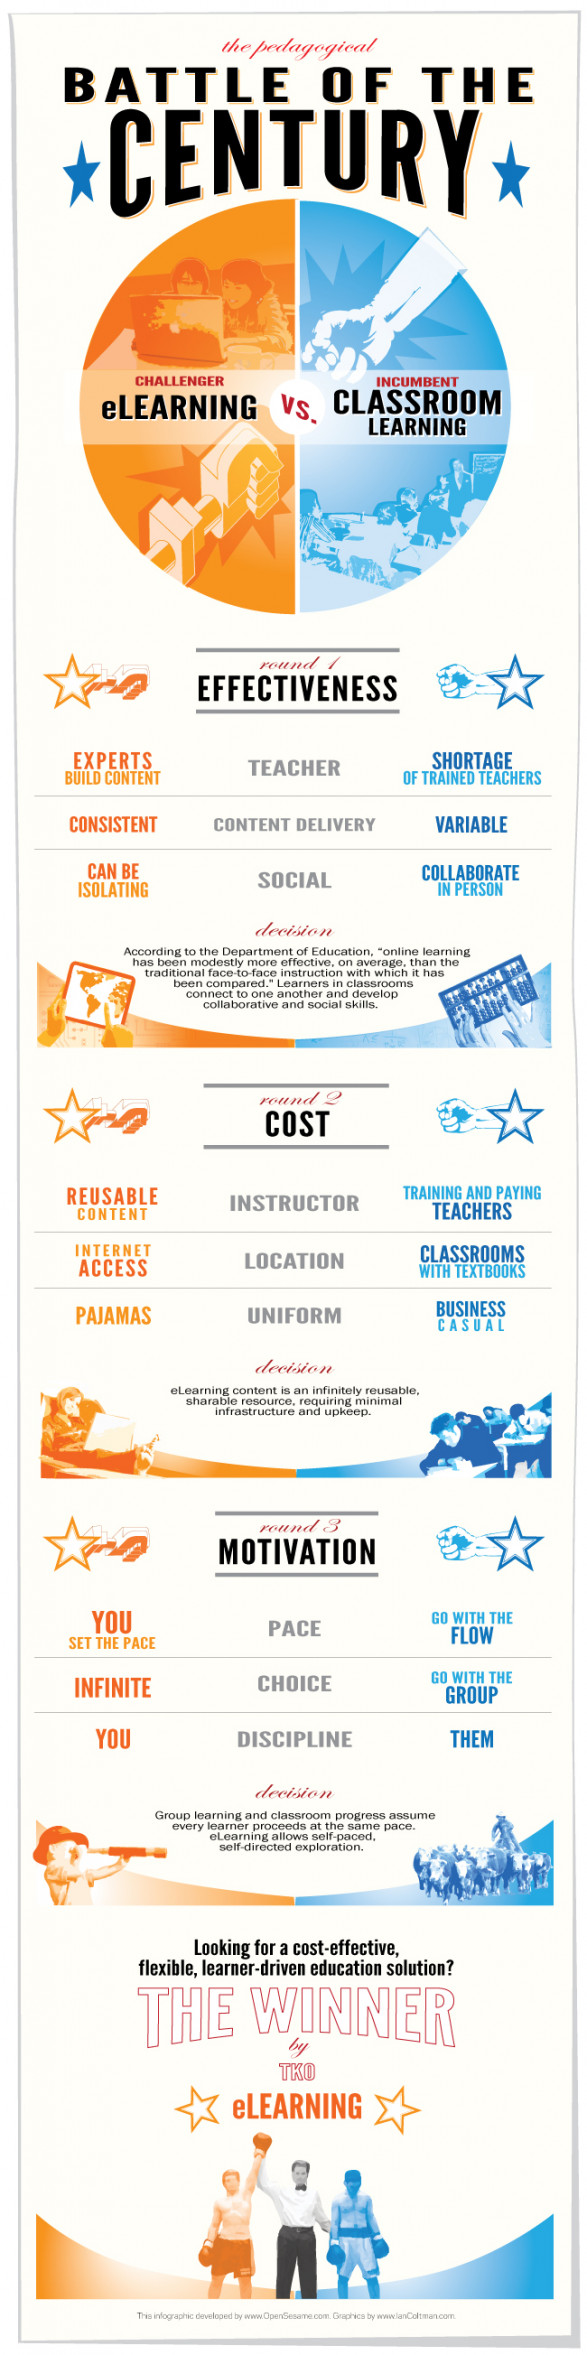 Battle of the Century: eLearning vs. Classroom Learning